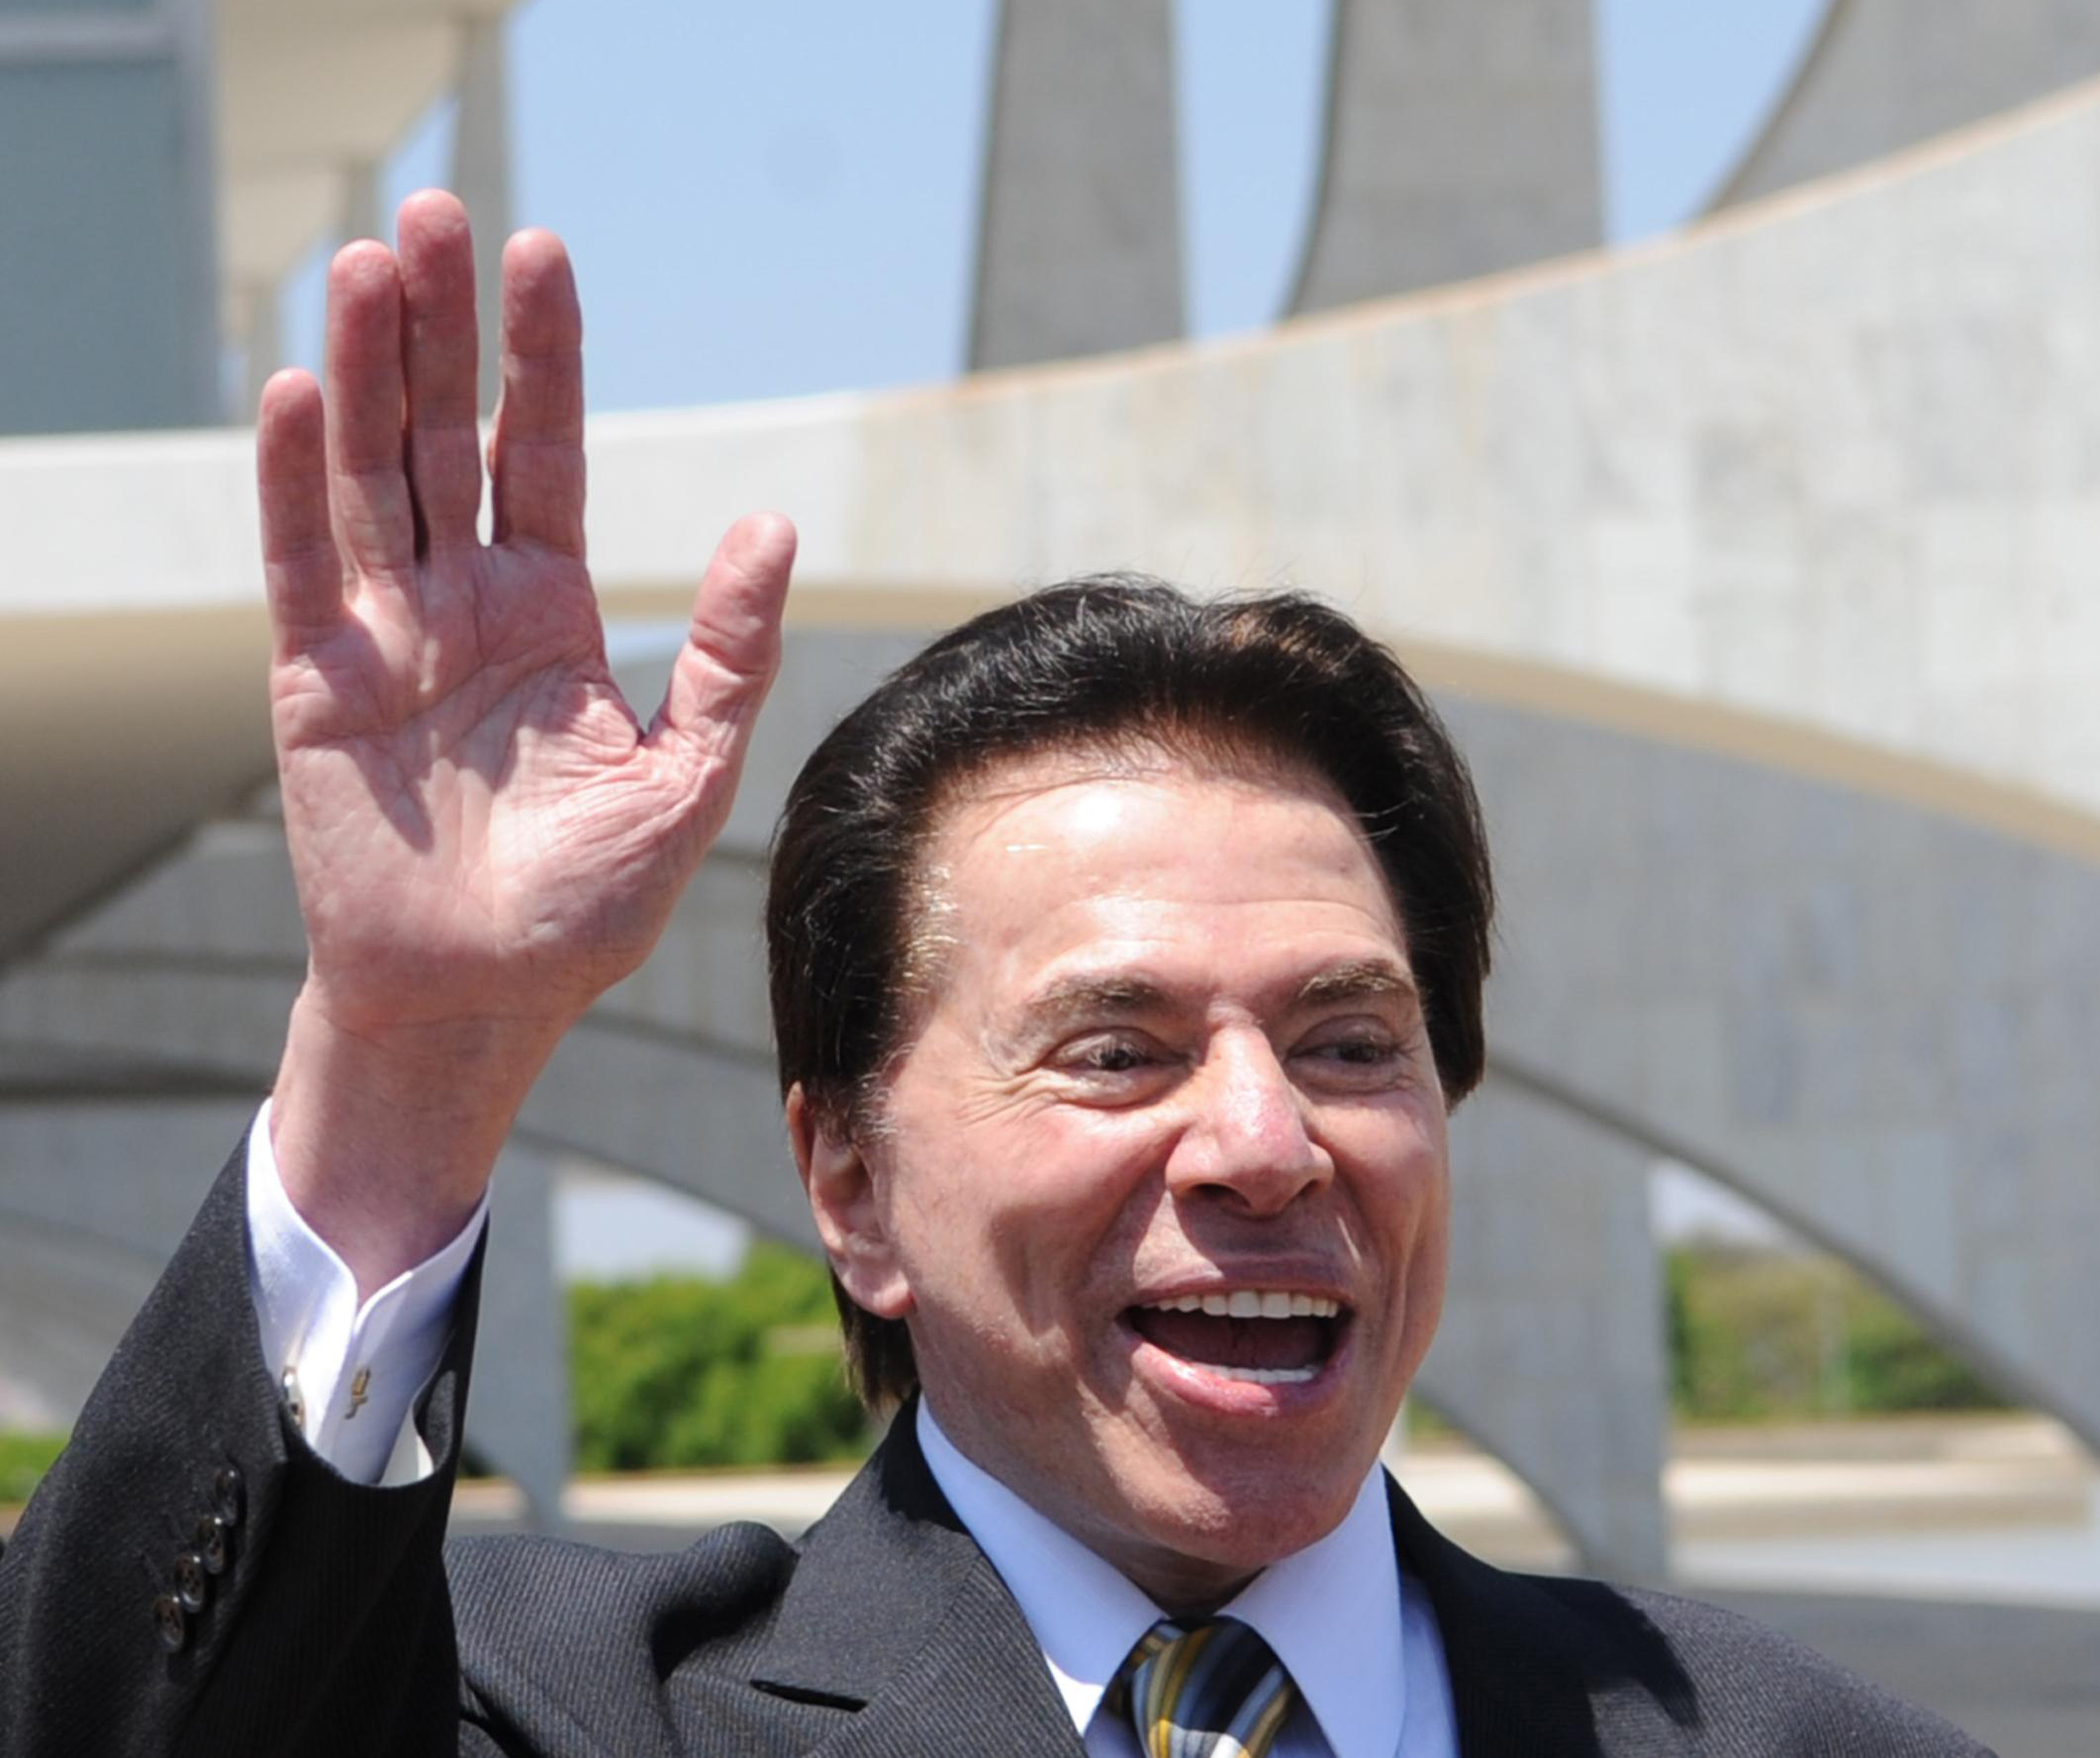 http://upload.wikimedia.org/wikipedia/commons/b/b0/Silvio_Santos1.jpg